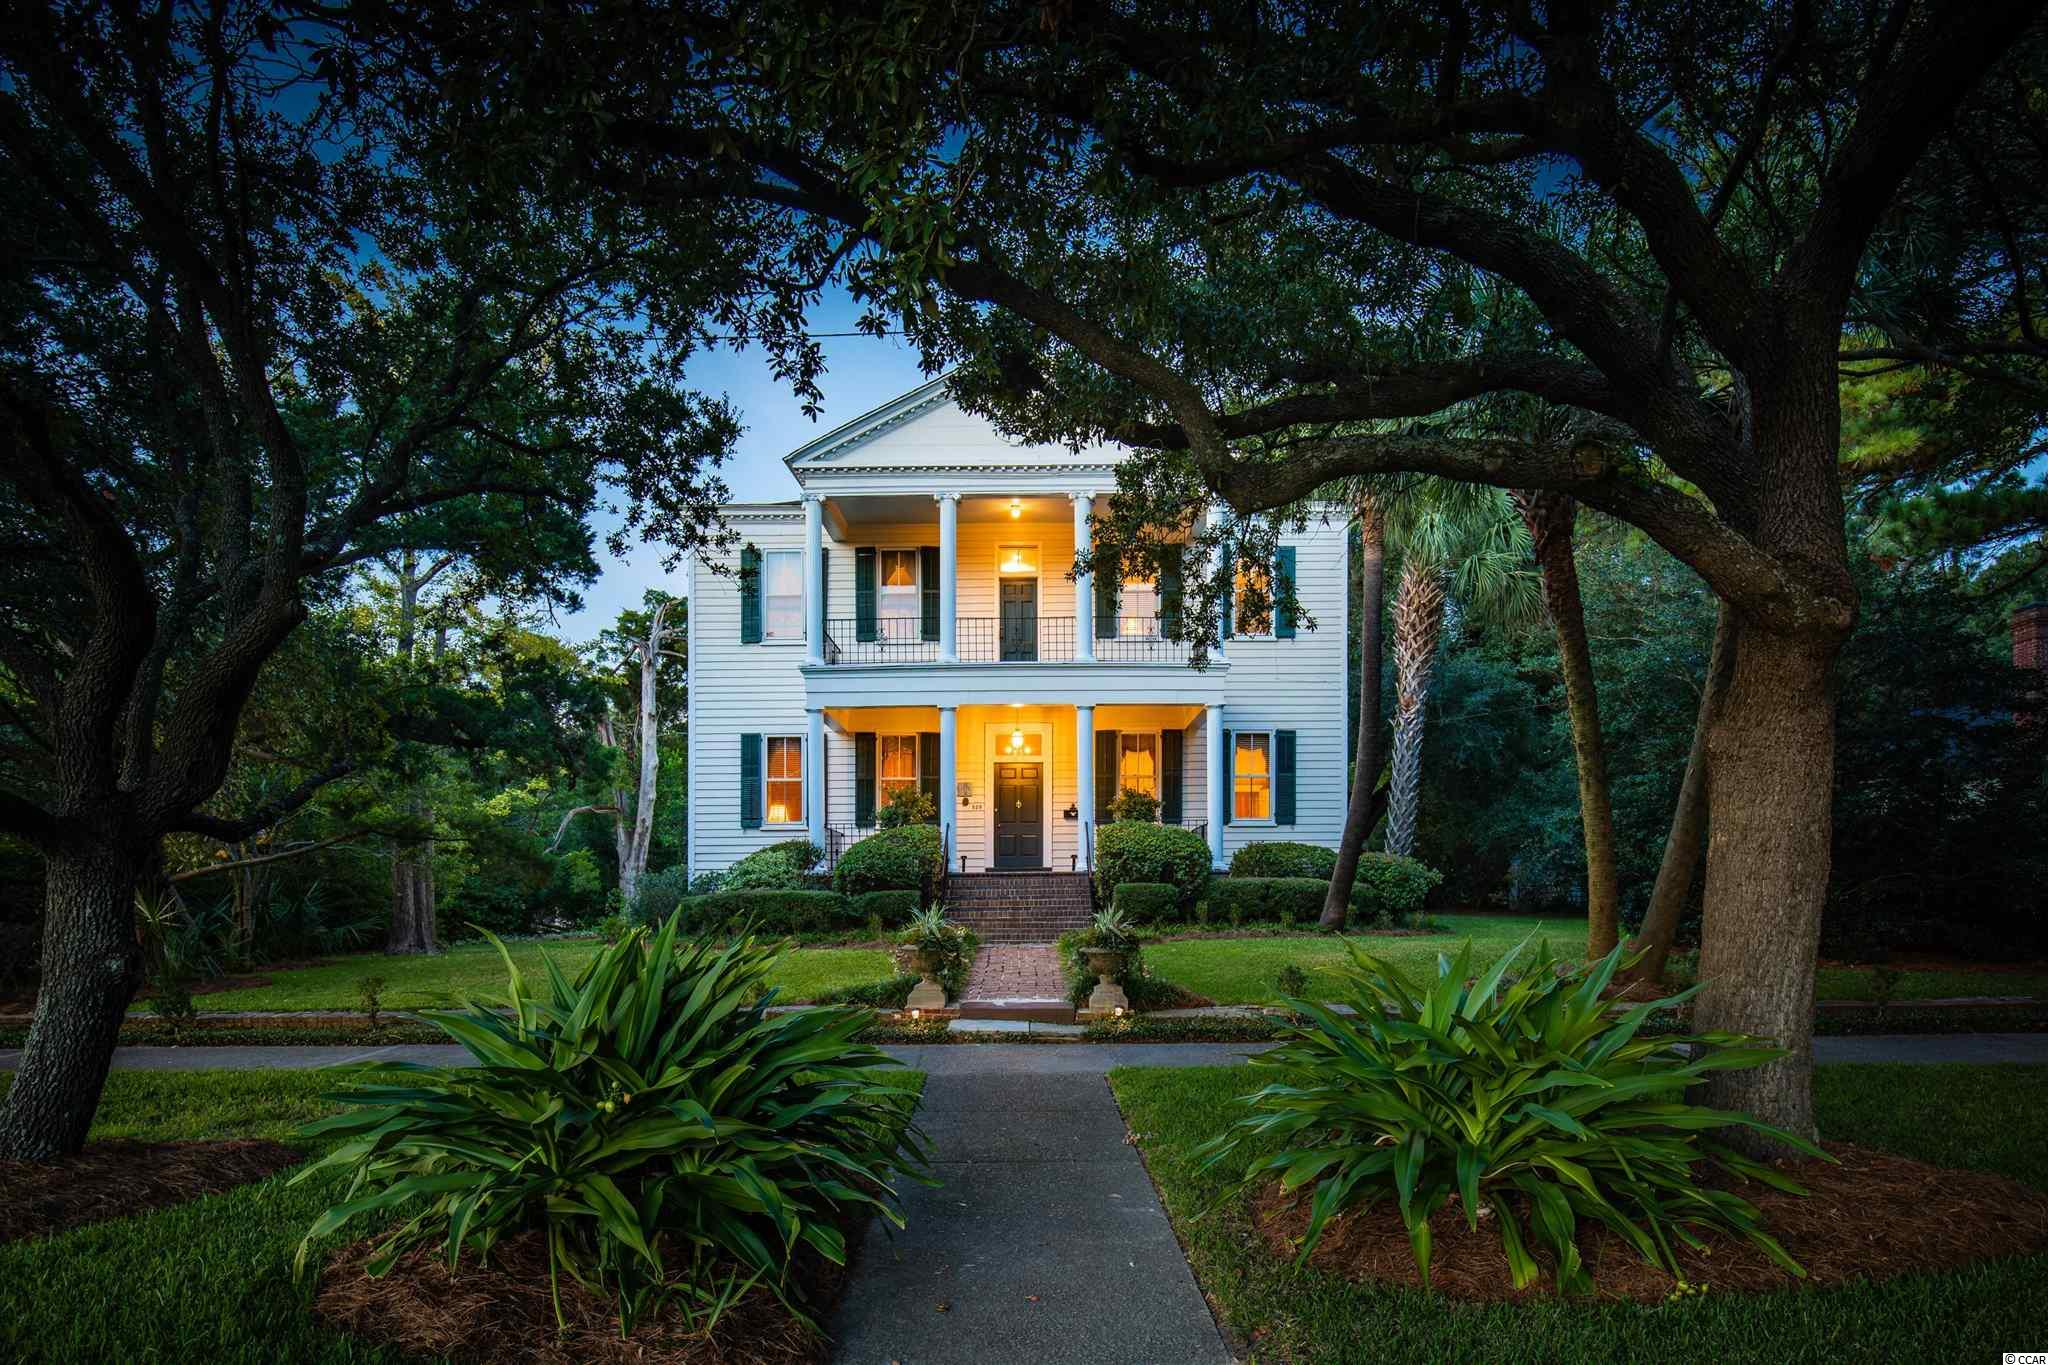 """Welcome to the Mary Man House.  Known as """"the mansion house on Bay Street,"""" this elegant Georgian double house was built circa 1775 for in-town entertaining by Mansfield Plantation owner Miss Mary Man. She personally supervised the construction of her impressive dwelling on a high, double lot formerly owned by  Thomas Lynch, Sr., South Carolina delegate to the Second Continental Congress which produced the Declaration of Independence.    The Mary Man house is remarkable for how much original fabric remains intact -- from hand-hewn cypress construction resting  on a nearly 250-year-old brick  foundation to gleaming heart-of-pine flooring throughout. The house features a four over four plan with eight original fireplaces.  A classic portico provides a dramatic entrance for """"the grand house of the old settlement."""" Entering the 5000 sq ft residence, a  wide  front hall reveals the magnificent space of  two formal rooms with twelve-foot ceilings:  a  living room with original  heart-of-pine paneling and a drawing room with half-moon and candlelight moldings.  A massive circa 1790 French Rococo giltwood mirror (a Man family piece that conveys) reflects the light of 19th-century Brockunier glass chandeliers (all four convey).  Beyond is the dining room, embellished with a large bay window and a pedimented cabinet for displaying silver, each with leaded glass.  You can entertain in the same spacious rooms and in the same gracious manner that Miss Mary Man enjoyed. The front hall staircase leads to the 18th-century ballroom (now the master bedroom and hall) where, in  December of 1812, legend says that the most famous woman of her time, Theodosia Burr Alston, of Oaks Plantation  (now part of Brookgreen Gardens)  was entertained at a ball held in her honor.(Theodosia, daughter of U.S. Vice President Aaron Burr -- who served under President Thomas Jefferson and who infamously killed Alexander Hamilton in a duel -- was the  wife of S.C. Governor Joseph Alston.  On the morning a"""